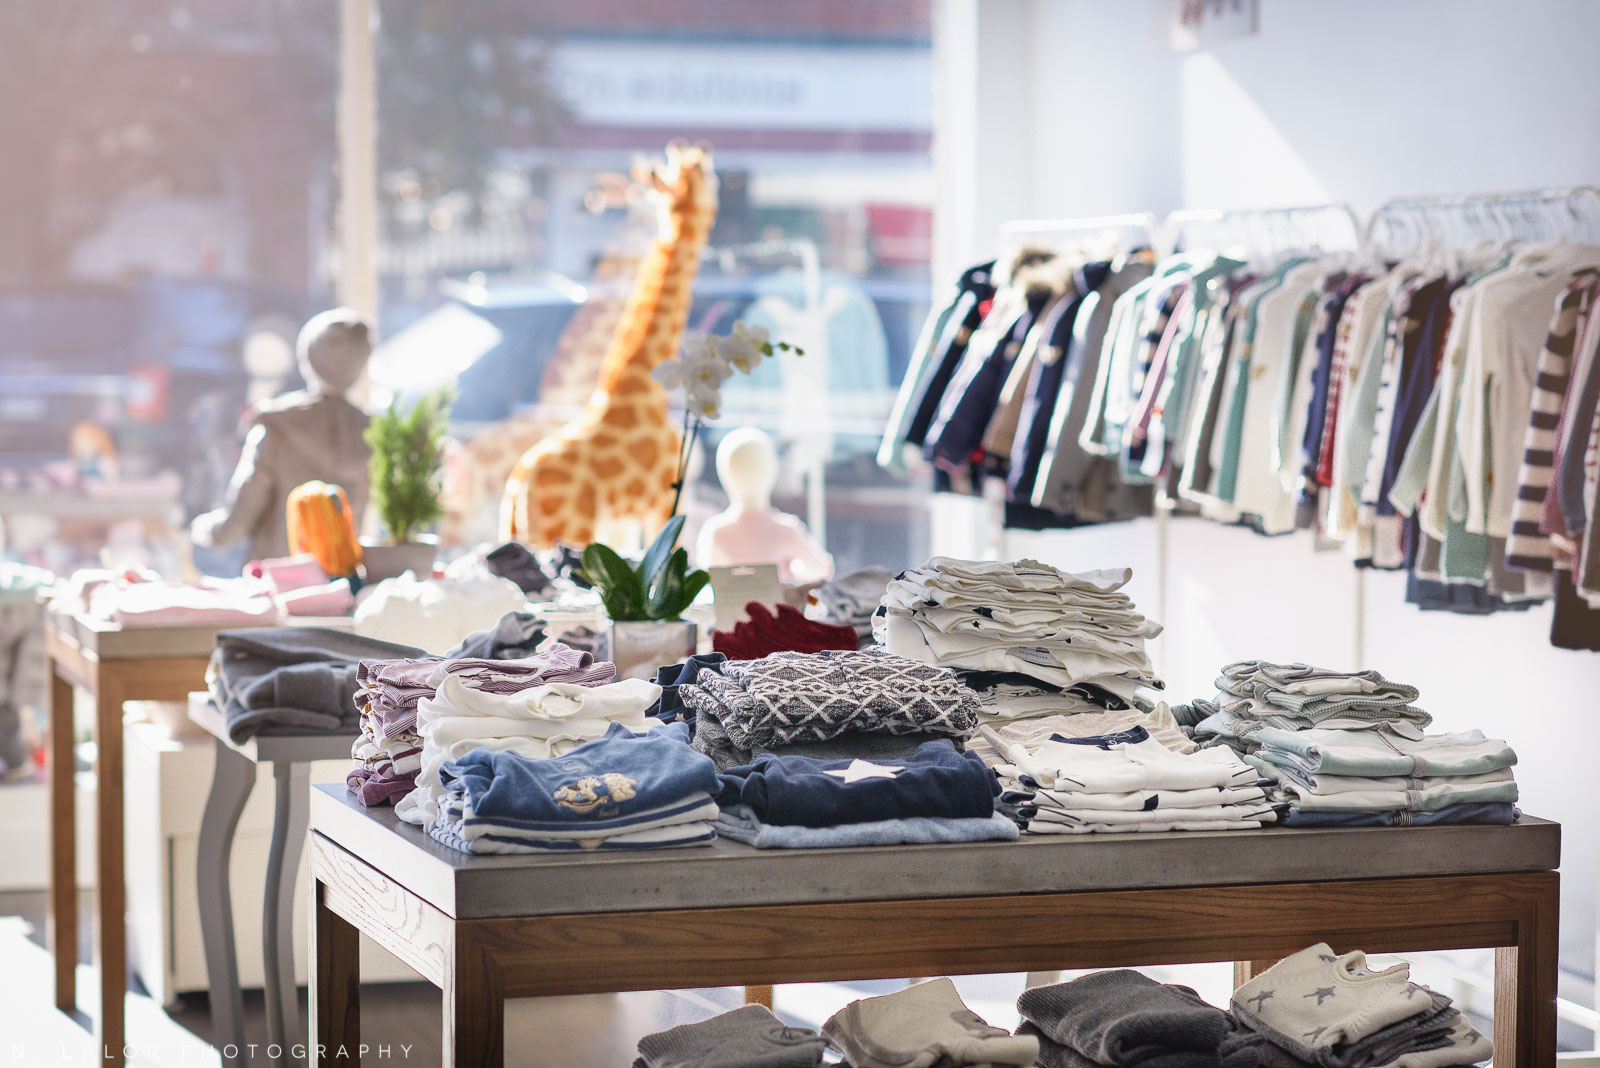 European brands Steiff, Papermoon, and Bellybutton at Ella & Henry in New Canaan. Photo by N. Lalor Photography.